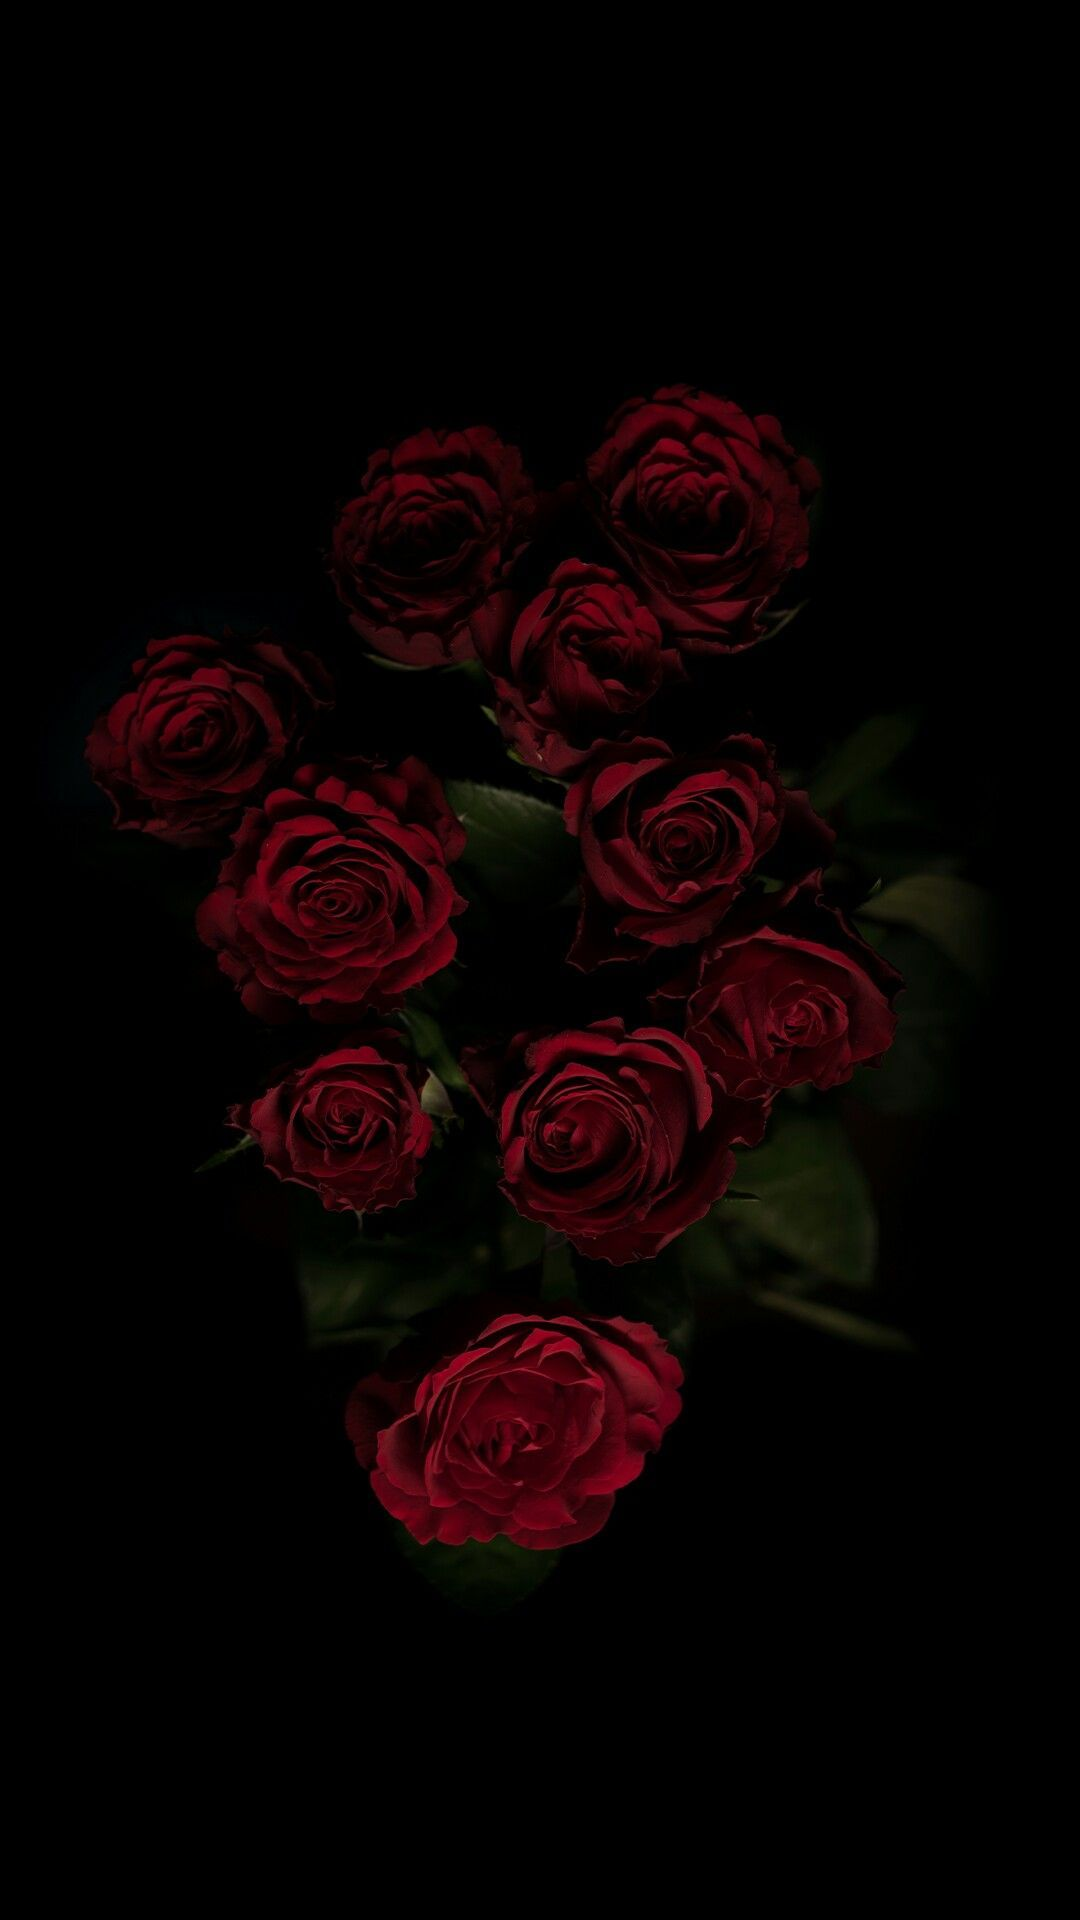 Tumblr Roses Hd Wallpapers Top Free Tumblr Roses Hd Backgrounds Wallpaperaccess